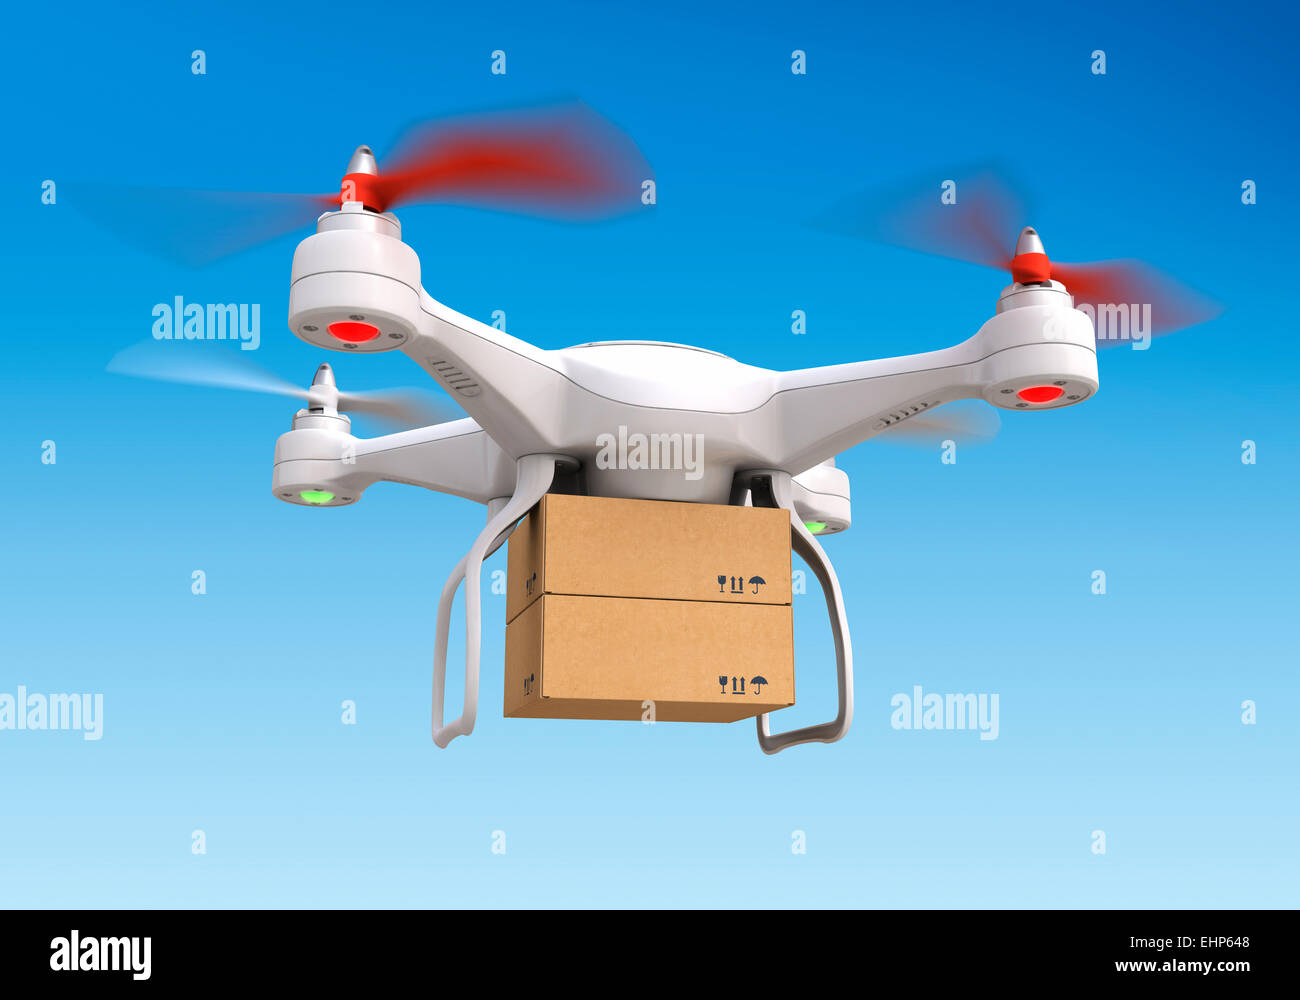 Quadrocopter drone  delivering package - Stock Image